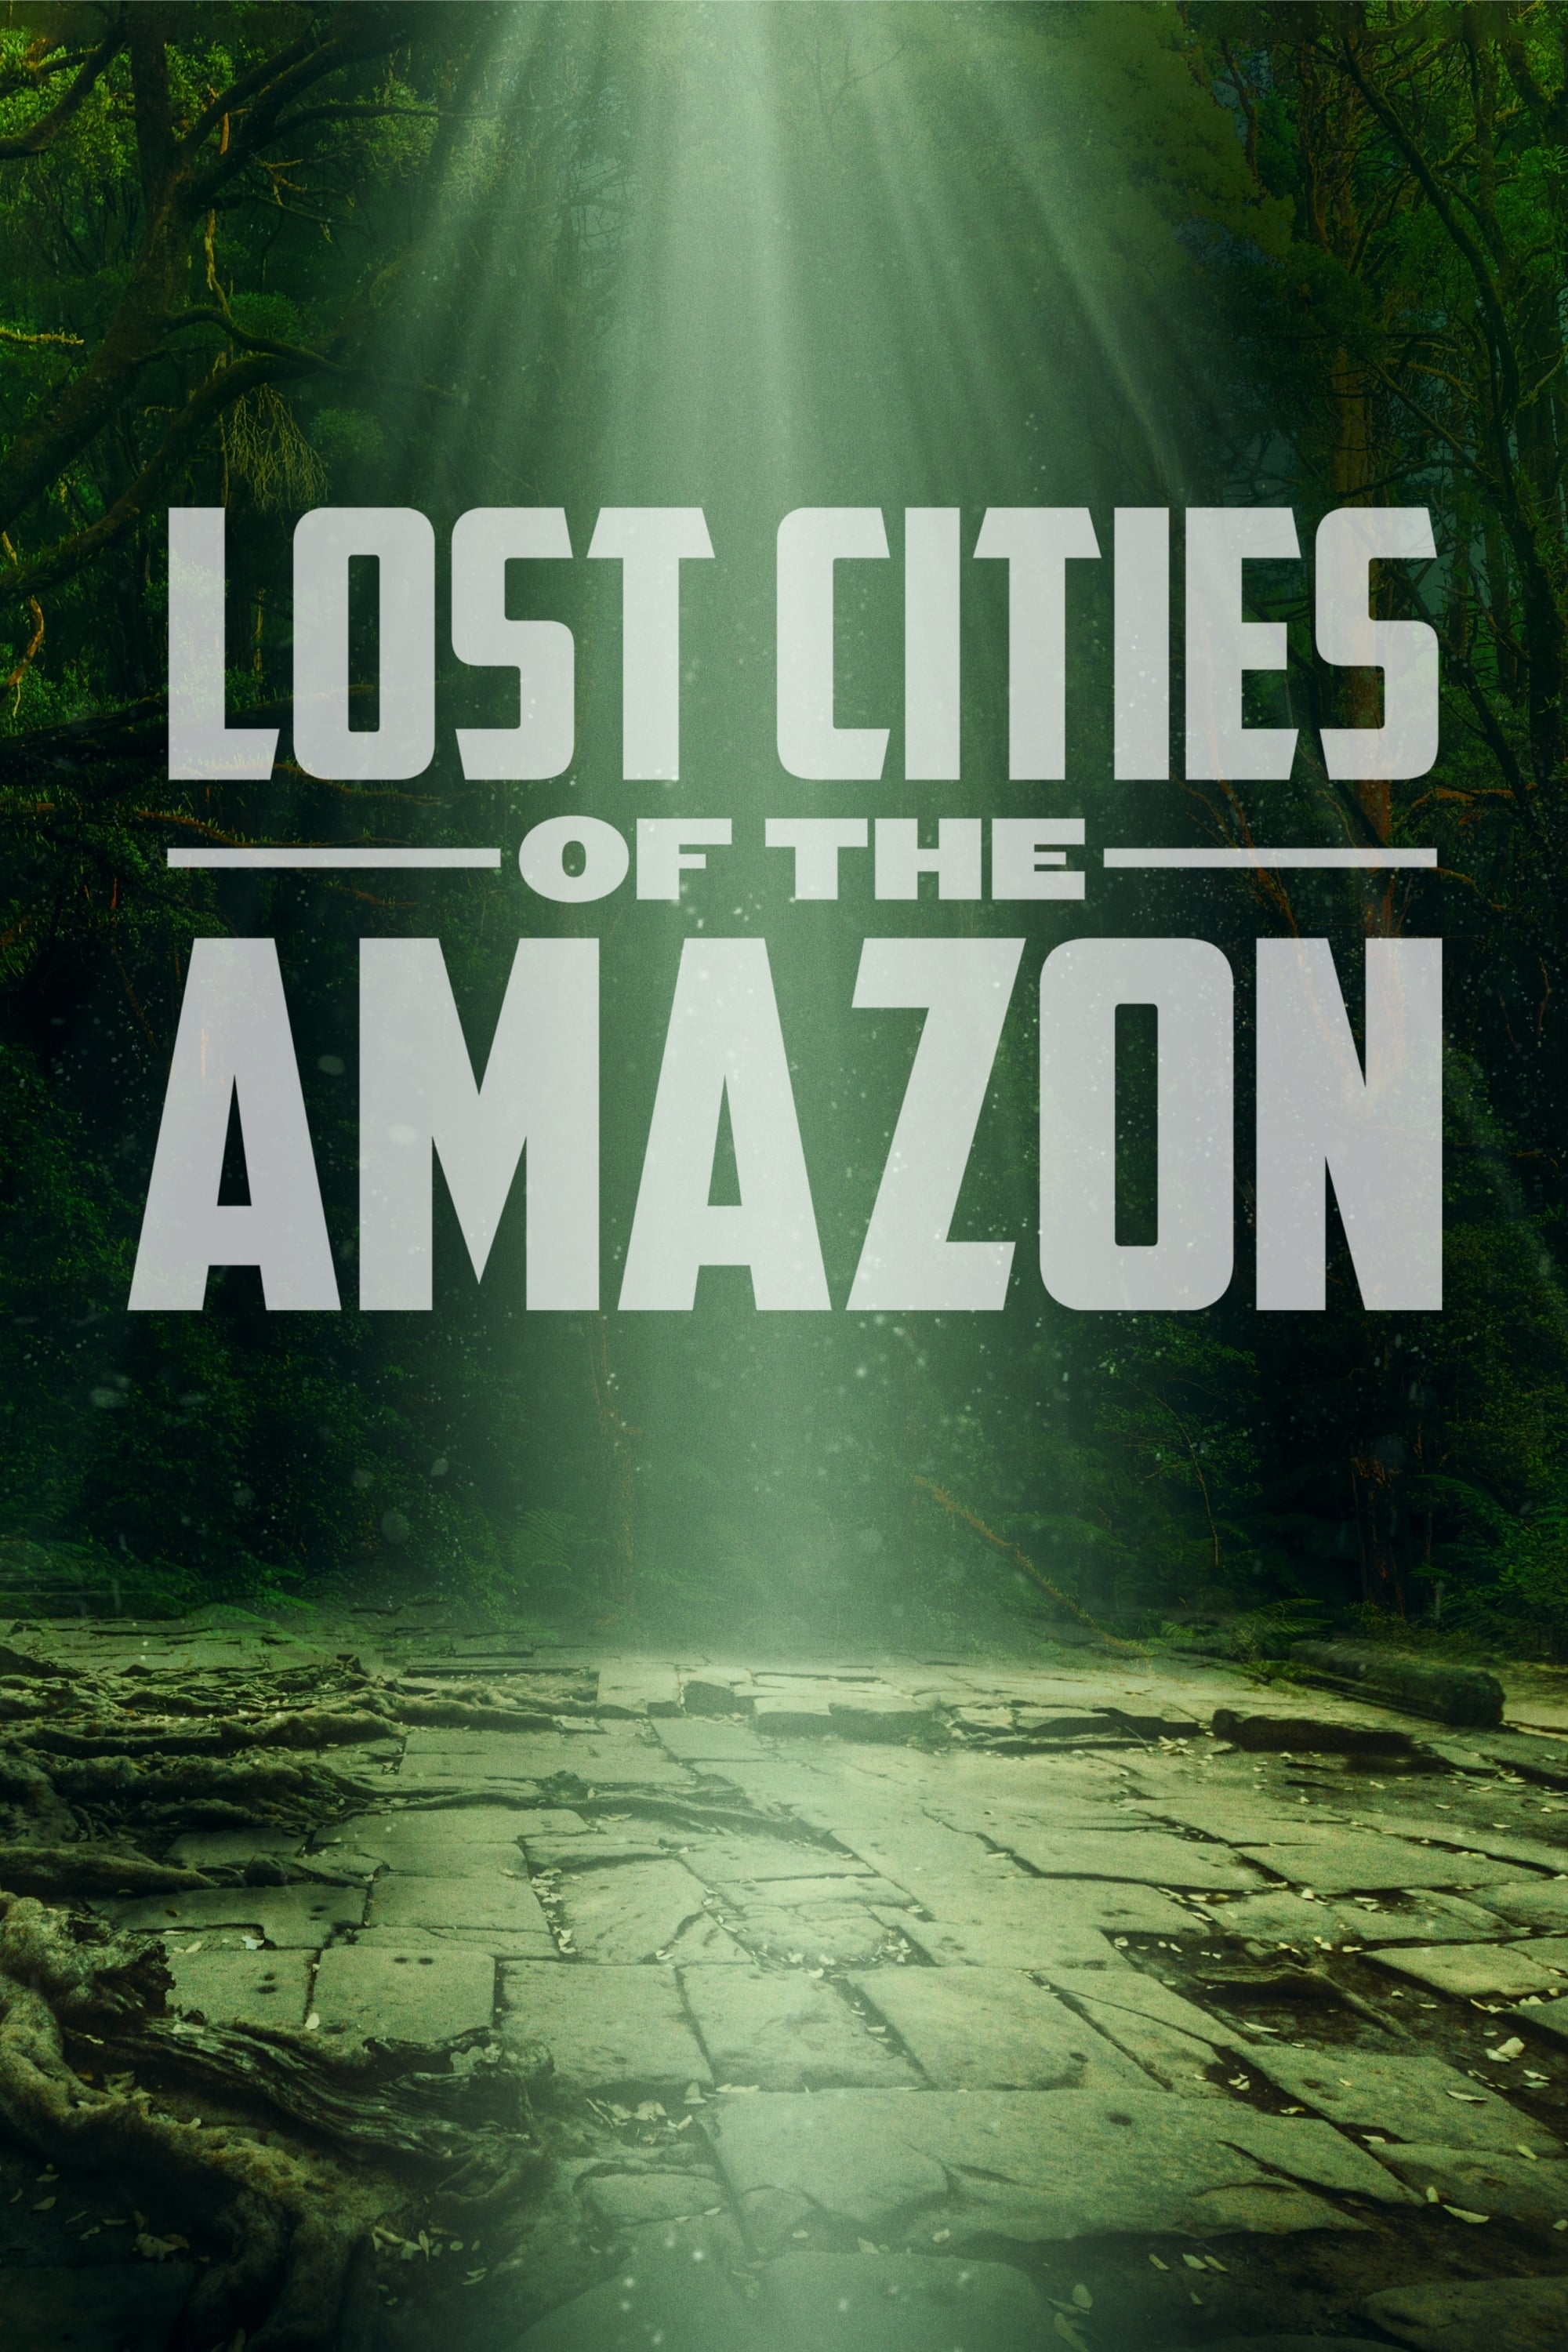 Lost Cities of the Amazon (2020)